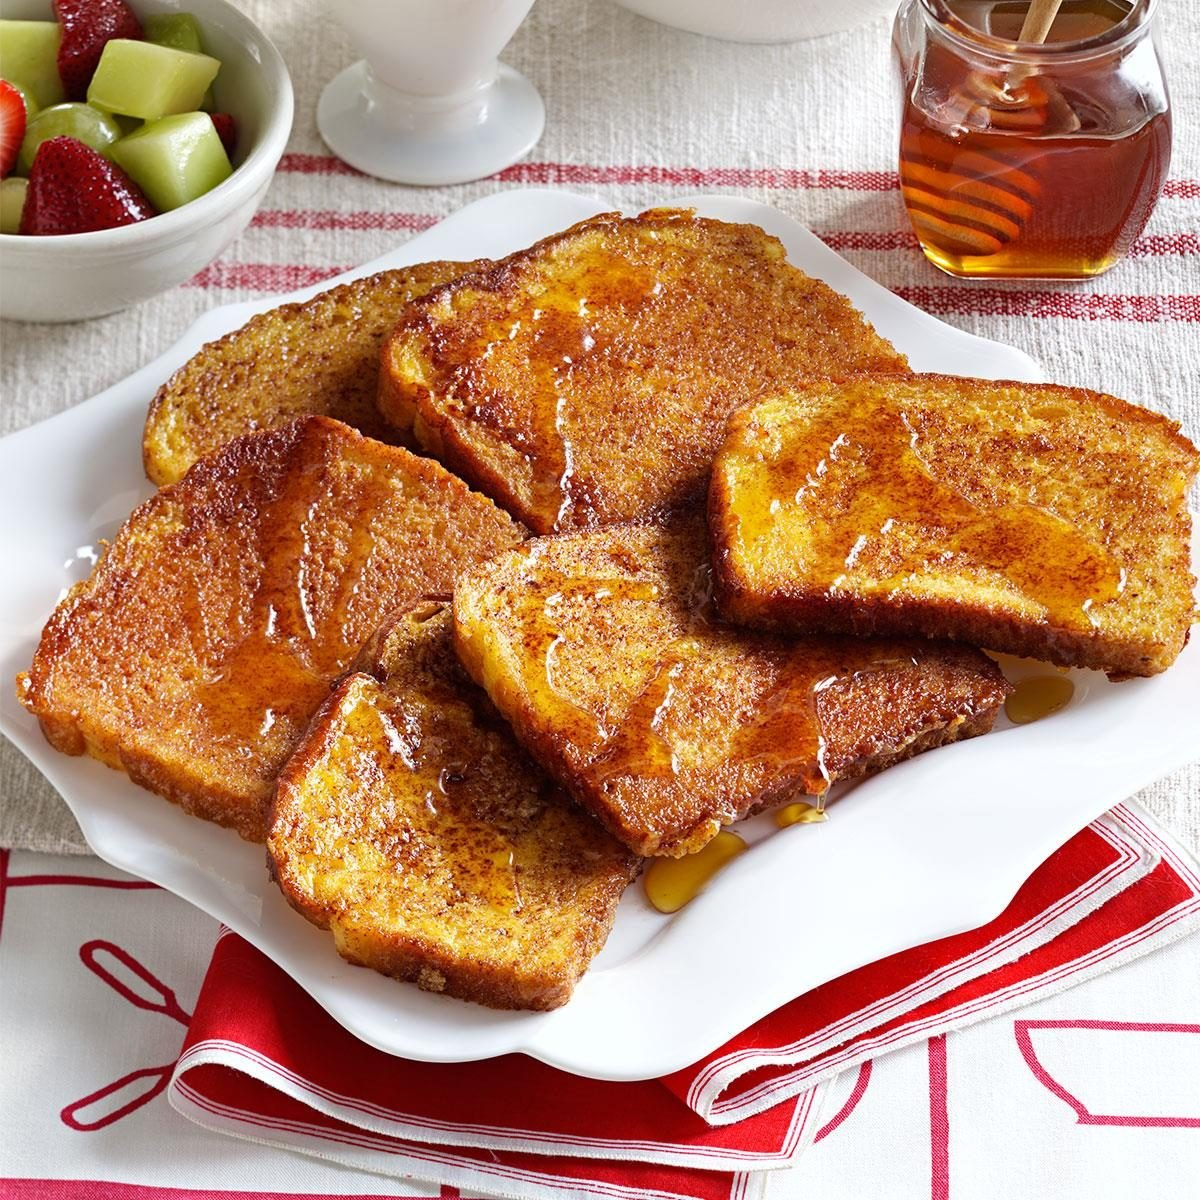 Orange-Cinnamon French Toast Recipe